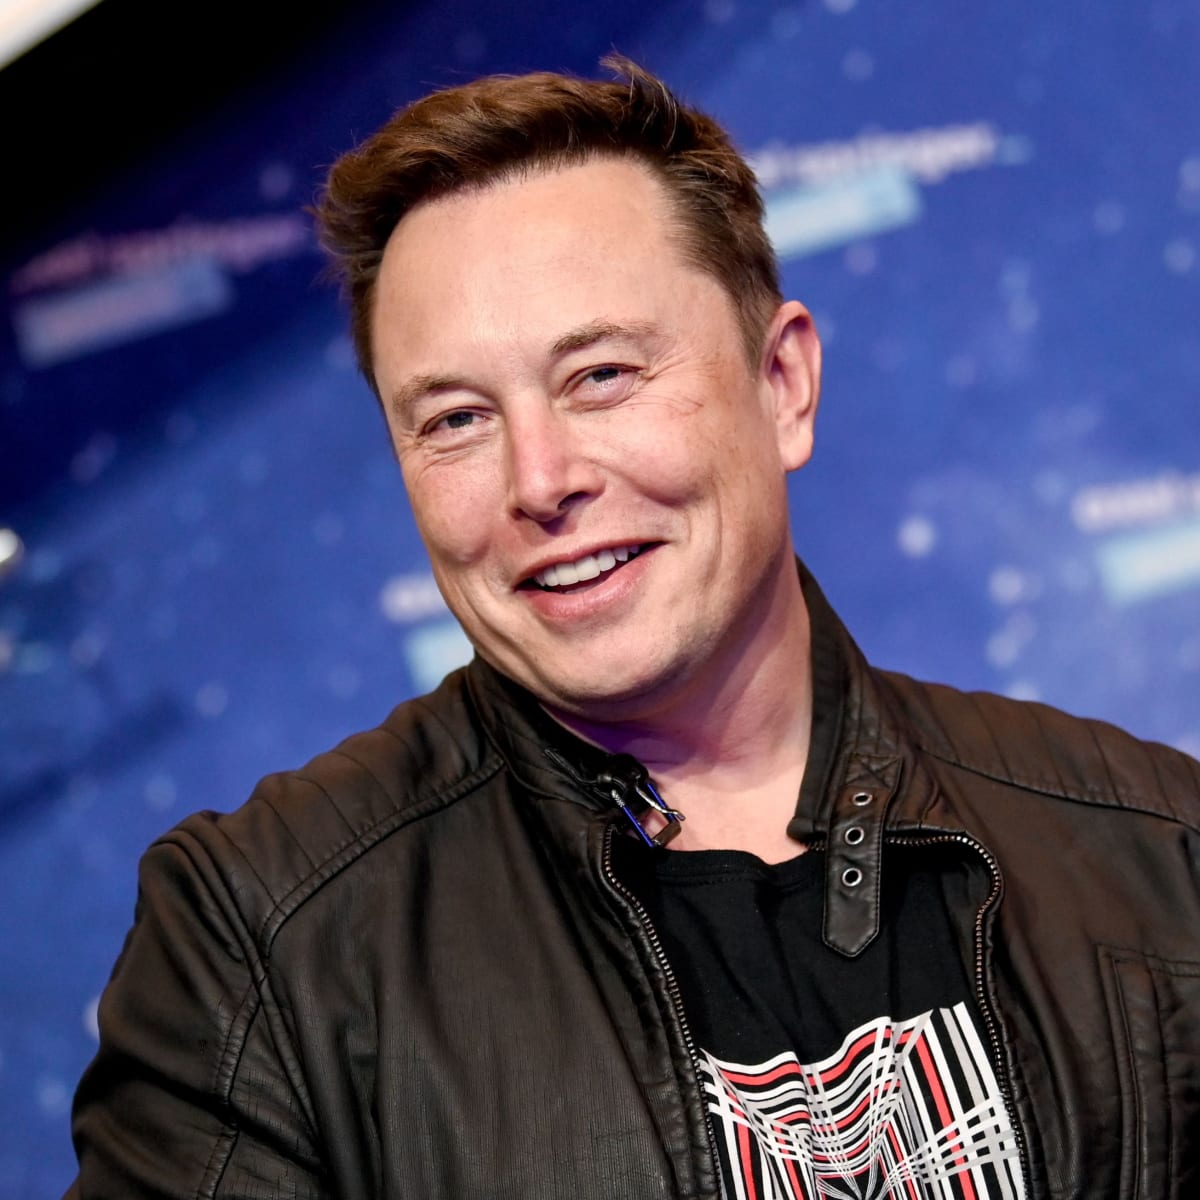 elon musk tesla spacex facts cool facts wife mom car stocks doge crypto weird